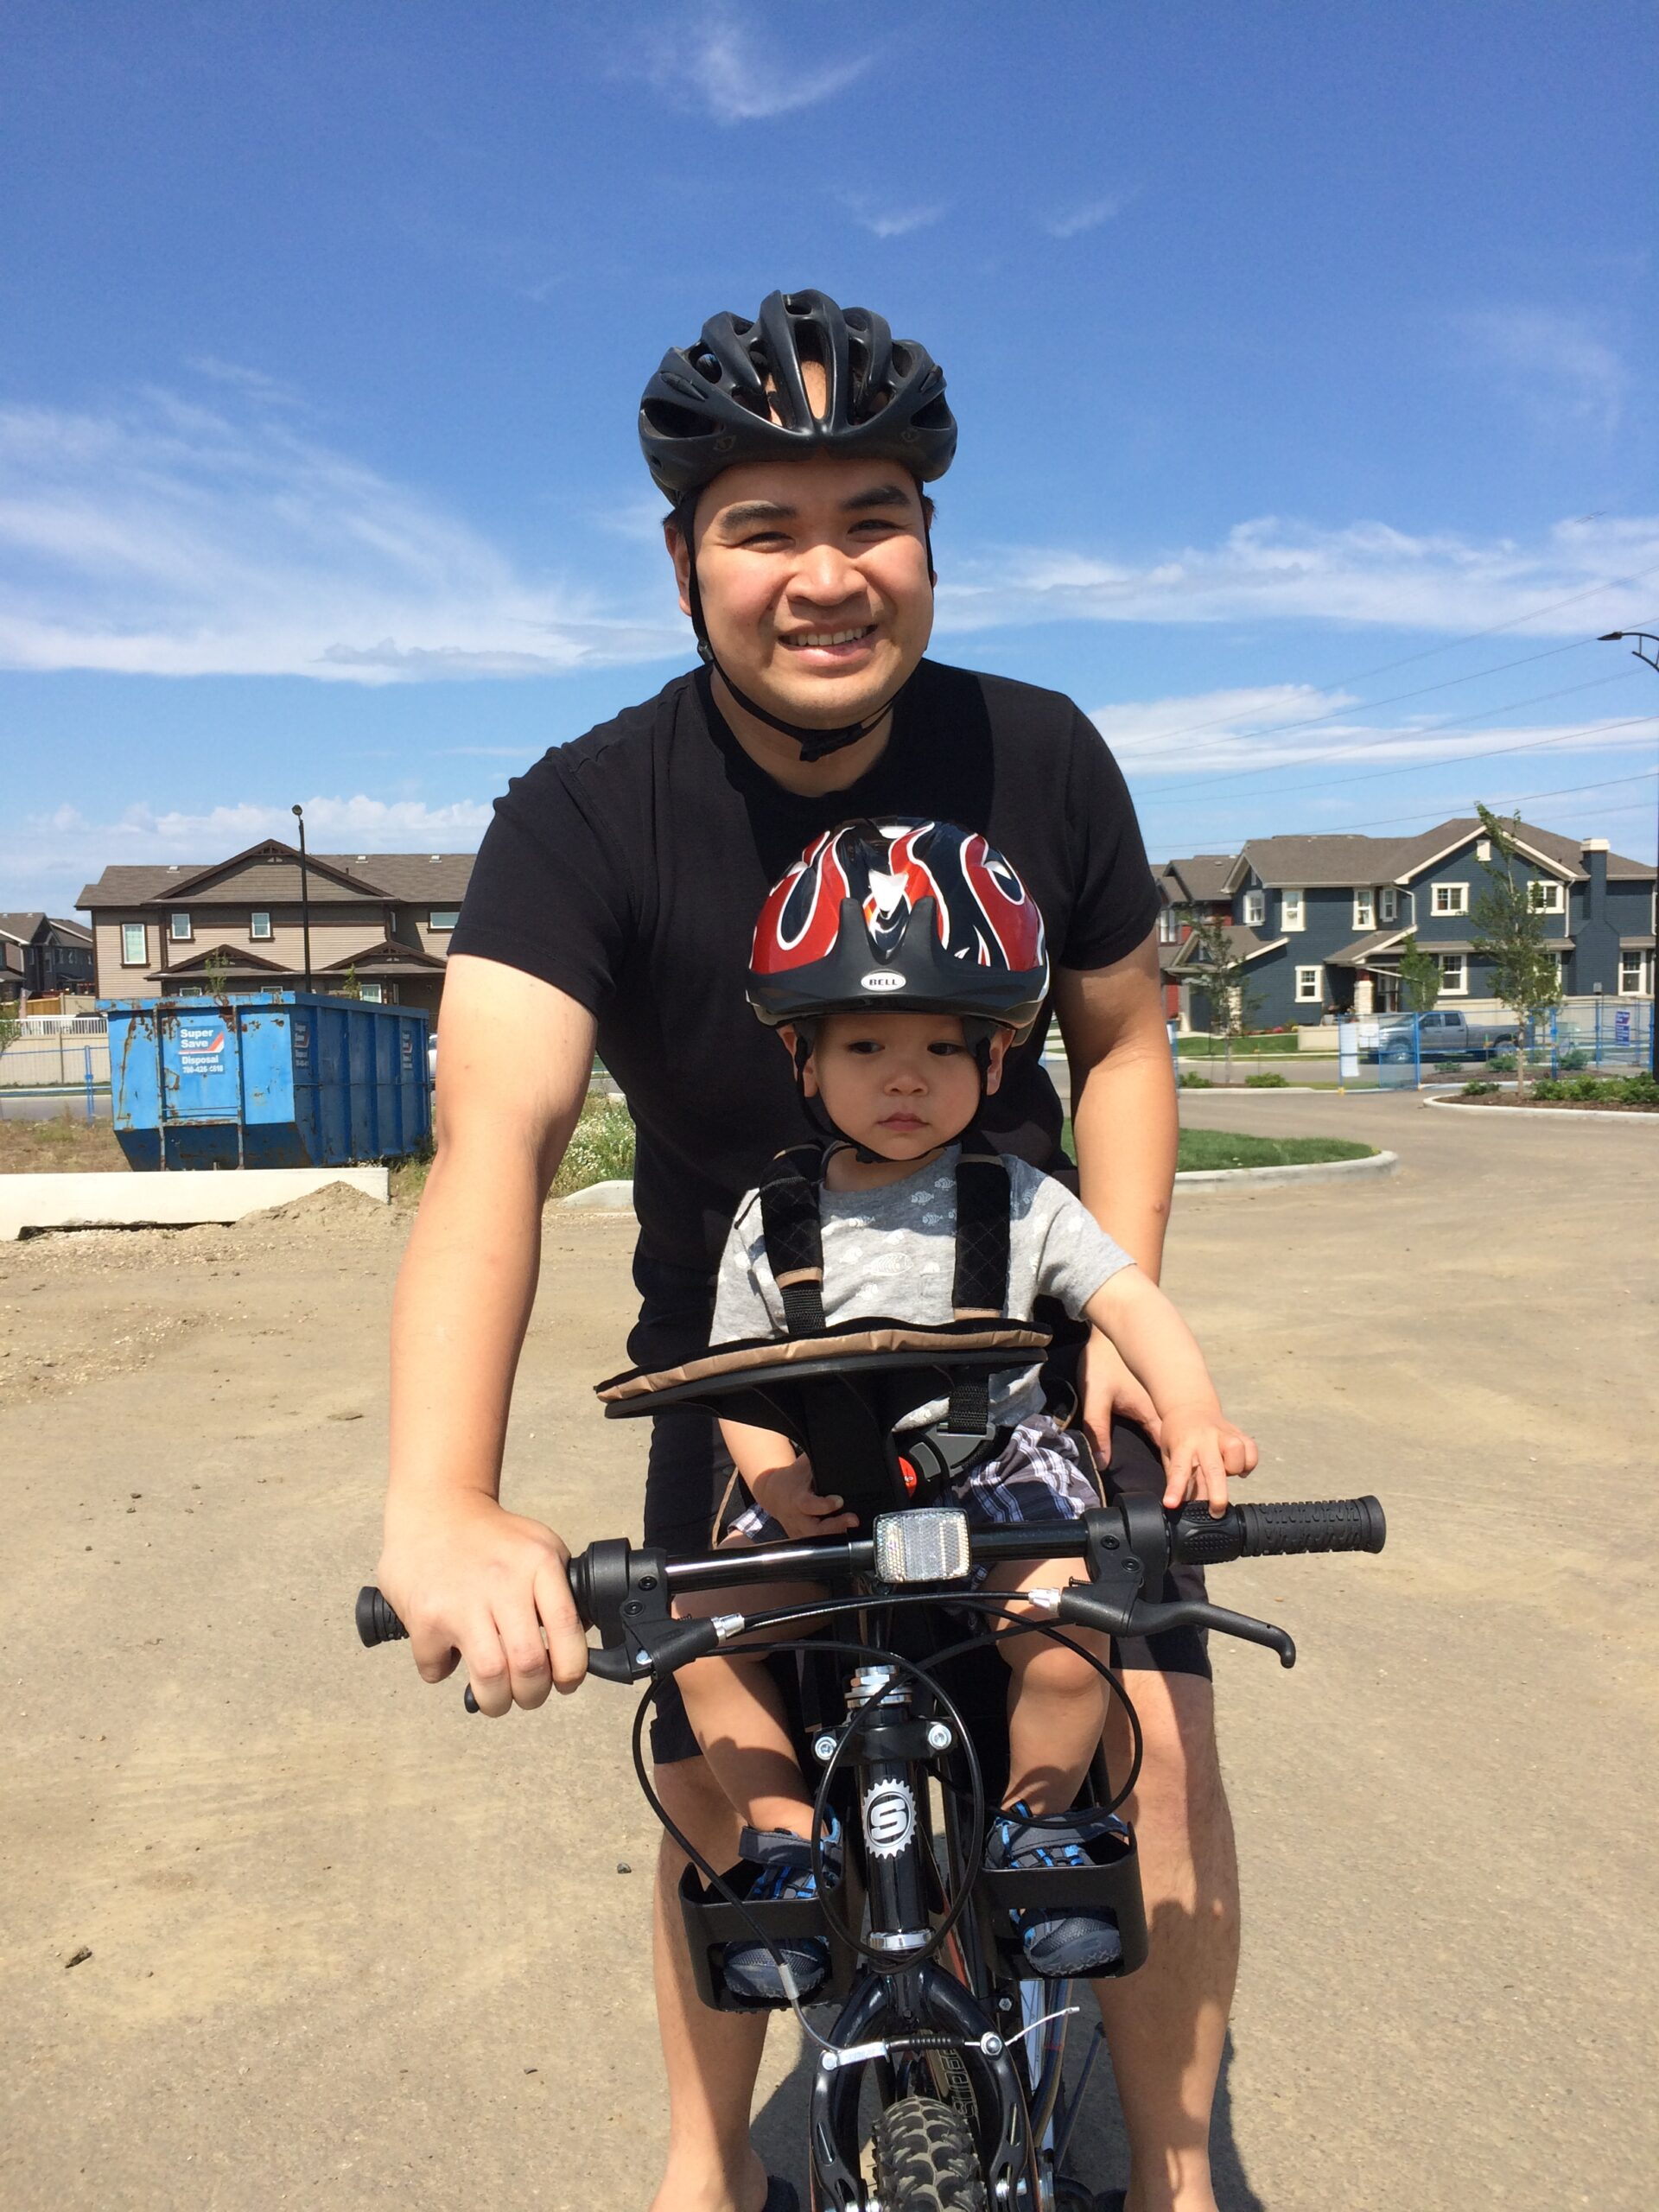 Andrew biking with kids - weight loss transformation - it is possible